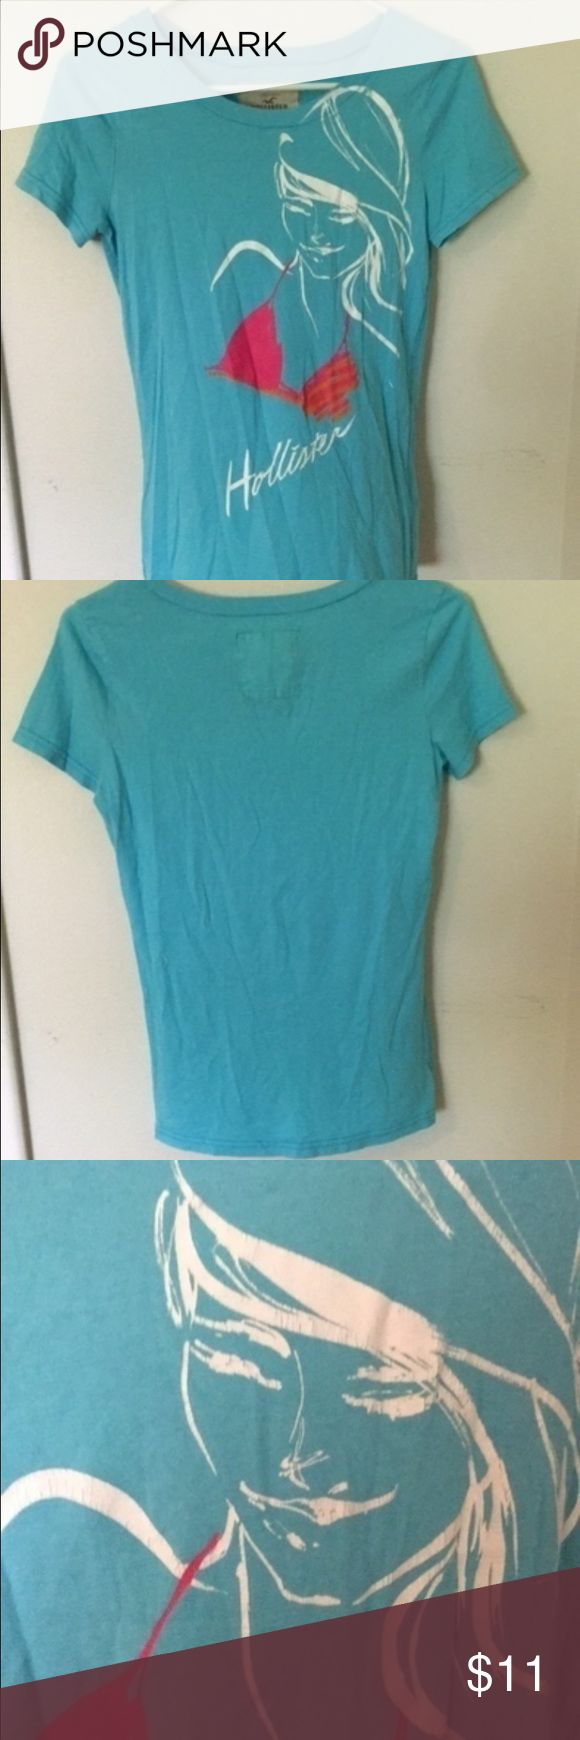 Hollister Graphic Tee Light blue graphic tee. Girl in bikini top. White, pink, and orange. Great condition. Hollister Tops Tees - Short Sleeve